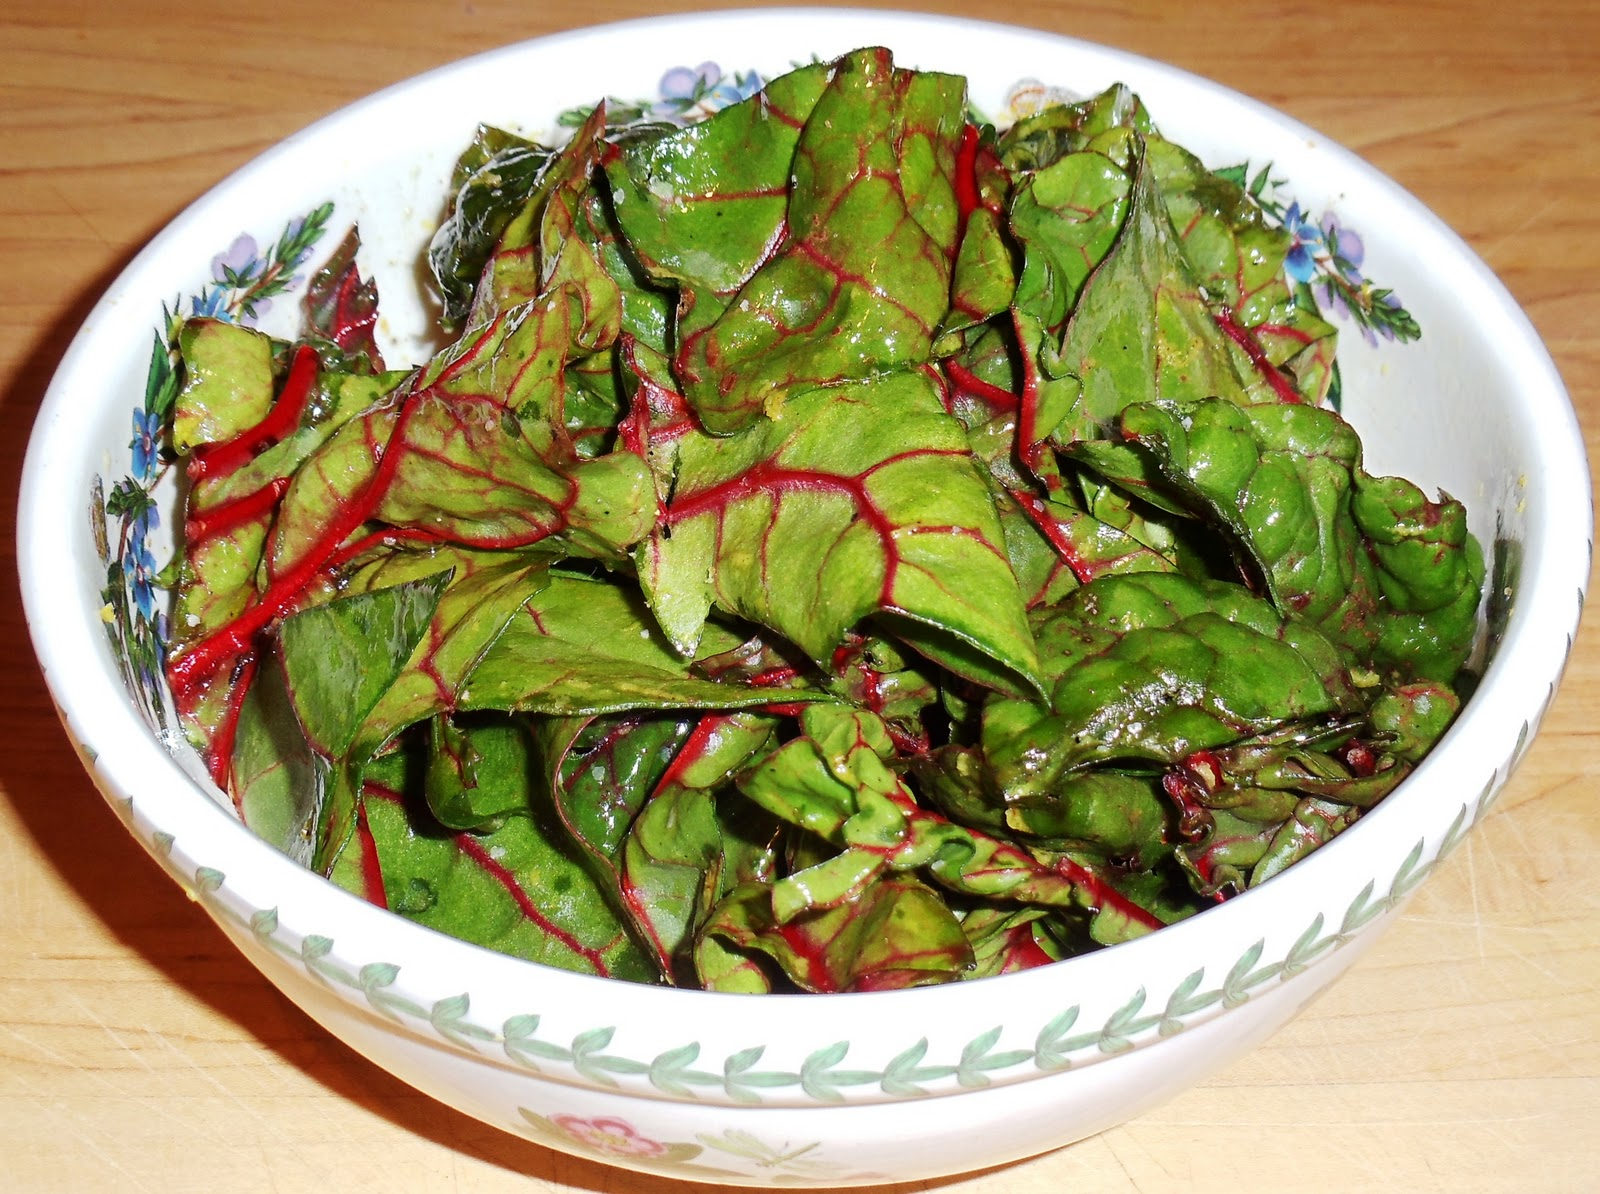 Sandra's Alaska Recipes: SANDRA'S CRISPY RED CHARD CHIPS